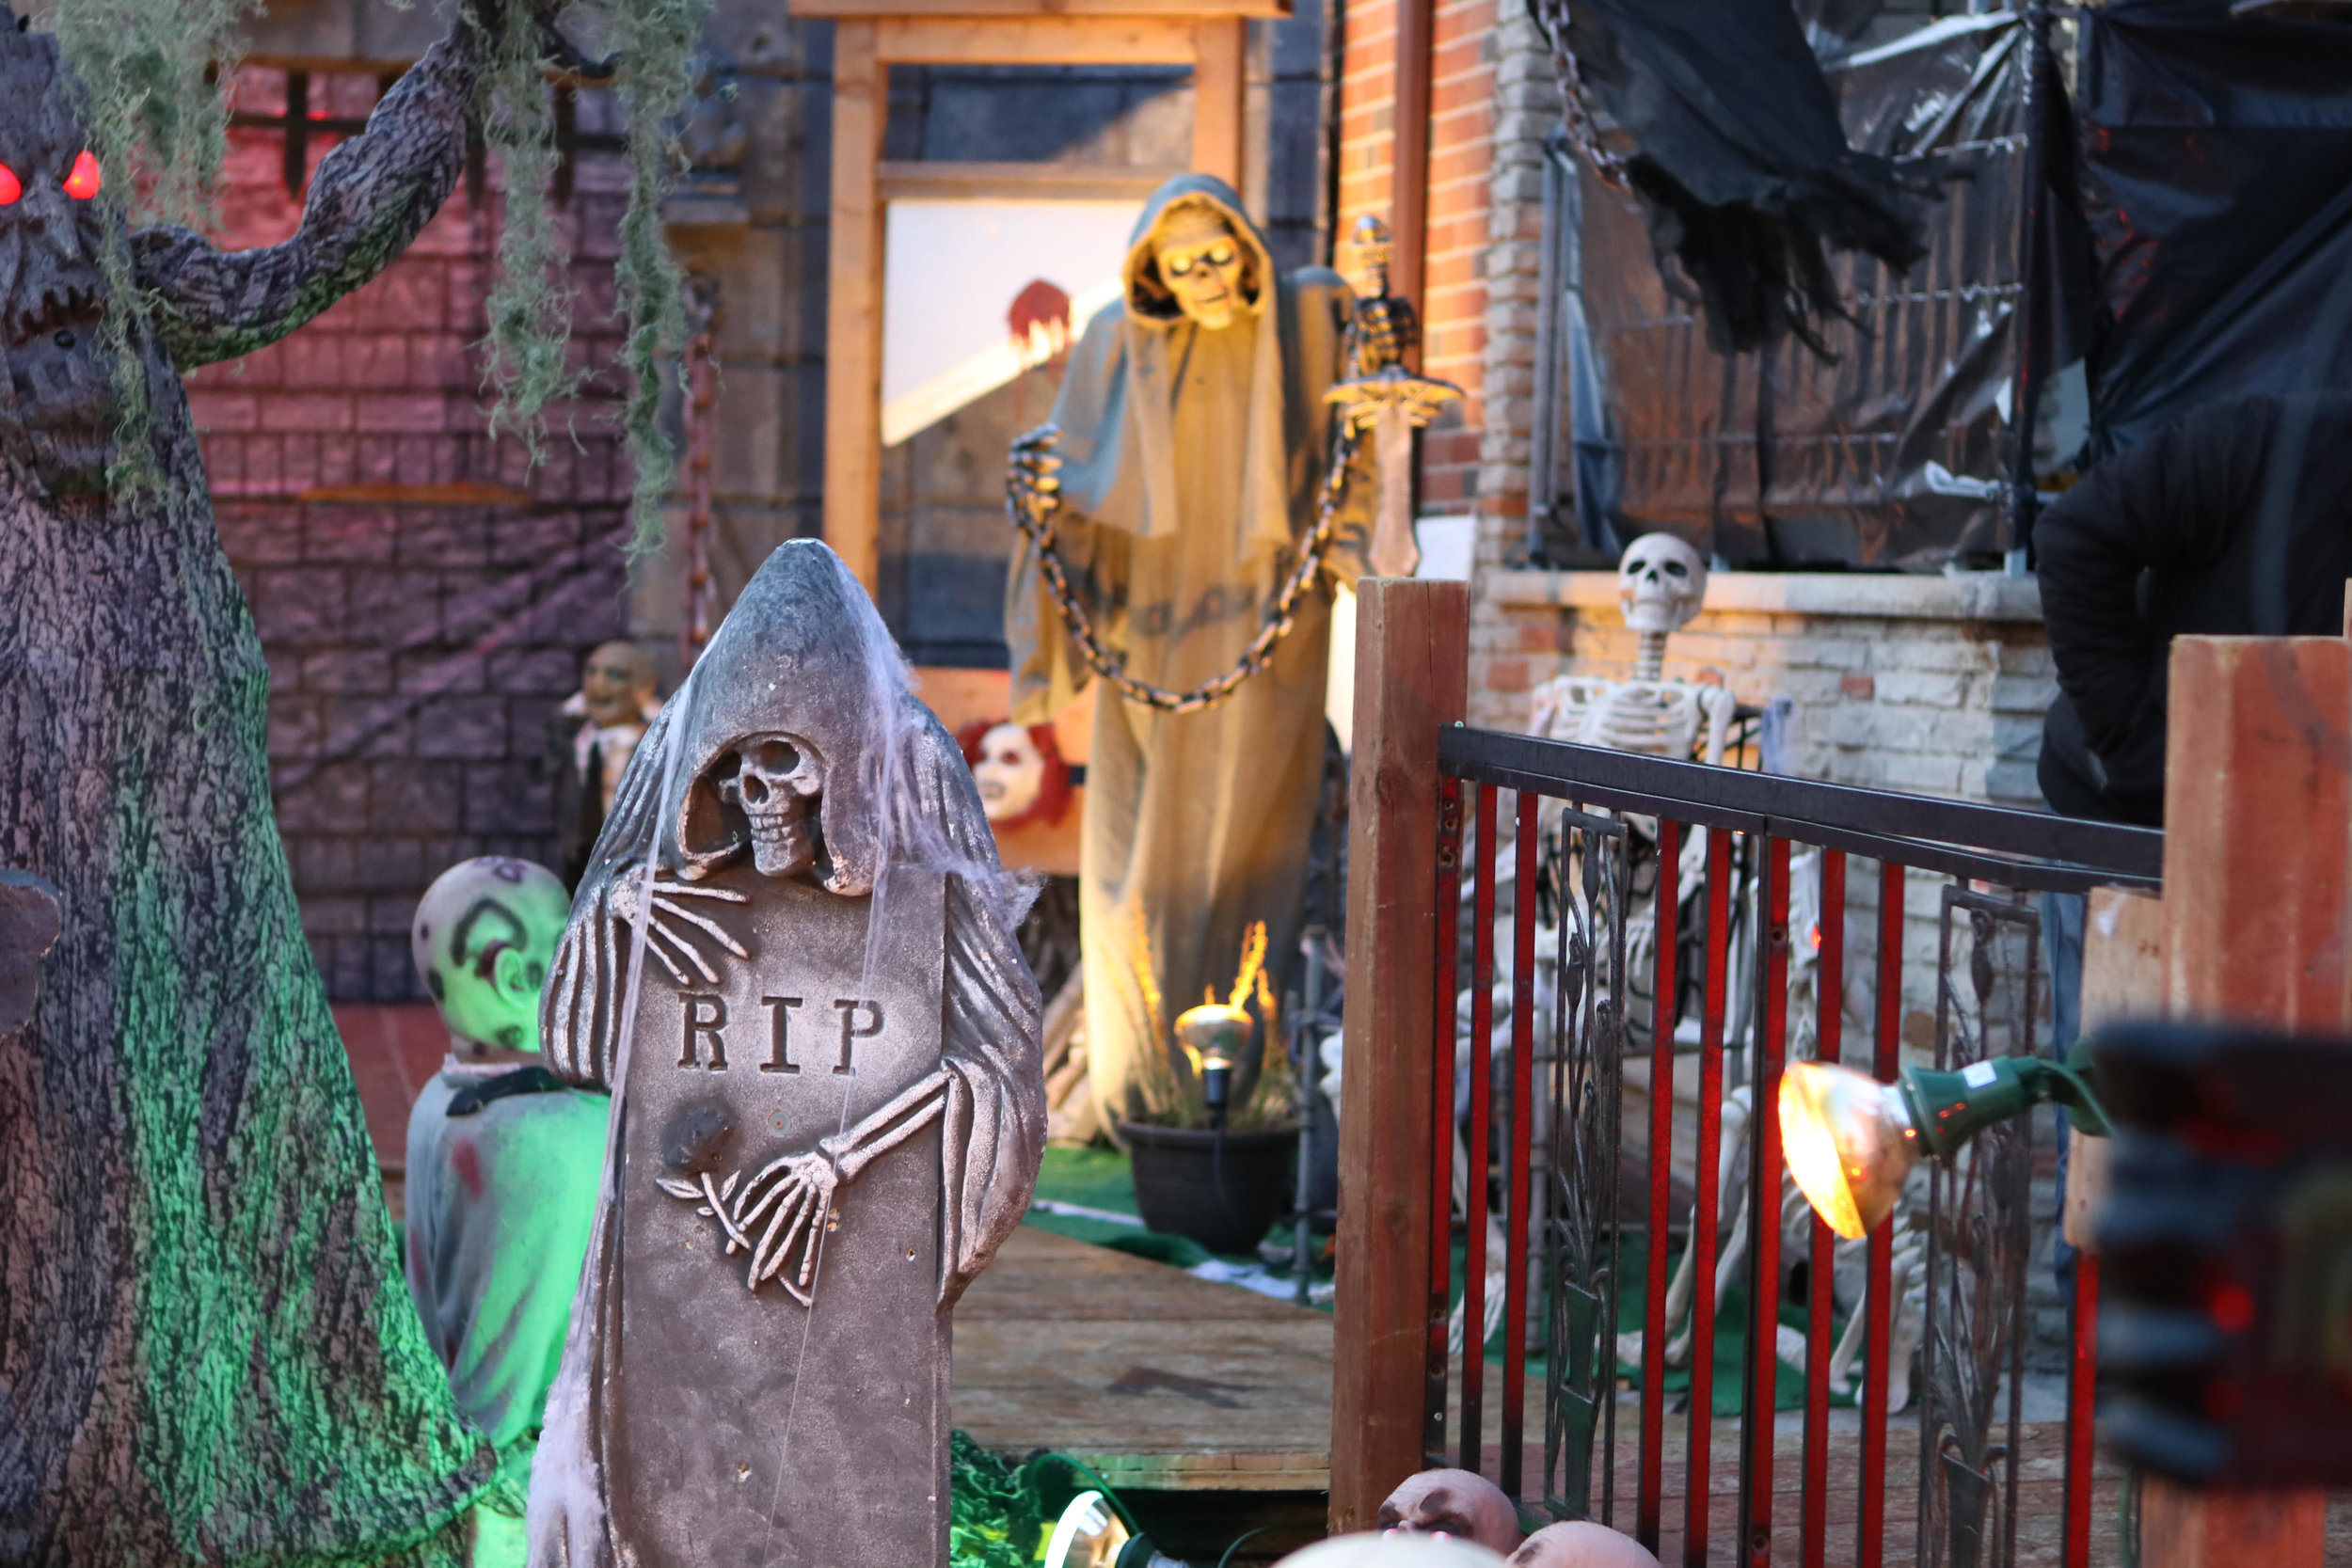 Phillips and Scarsella's Toronto house, decorated for Halloween night. Located at 10 Navenby Cres., in Toronto. (Photo: Sydney Brasil)